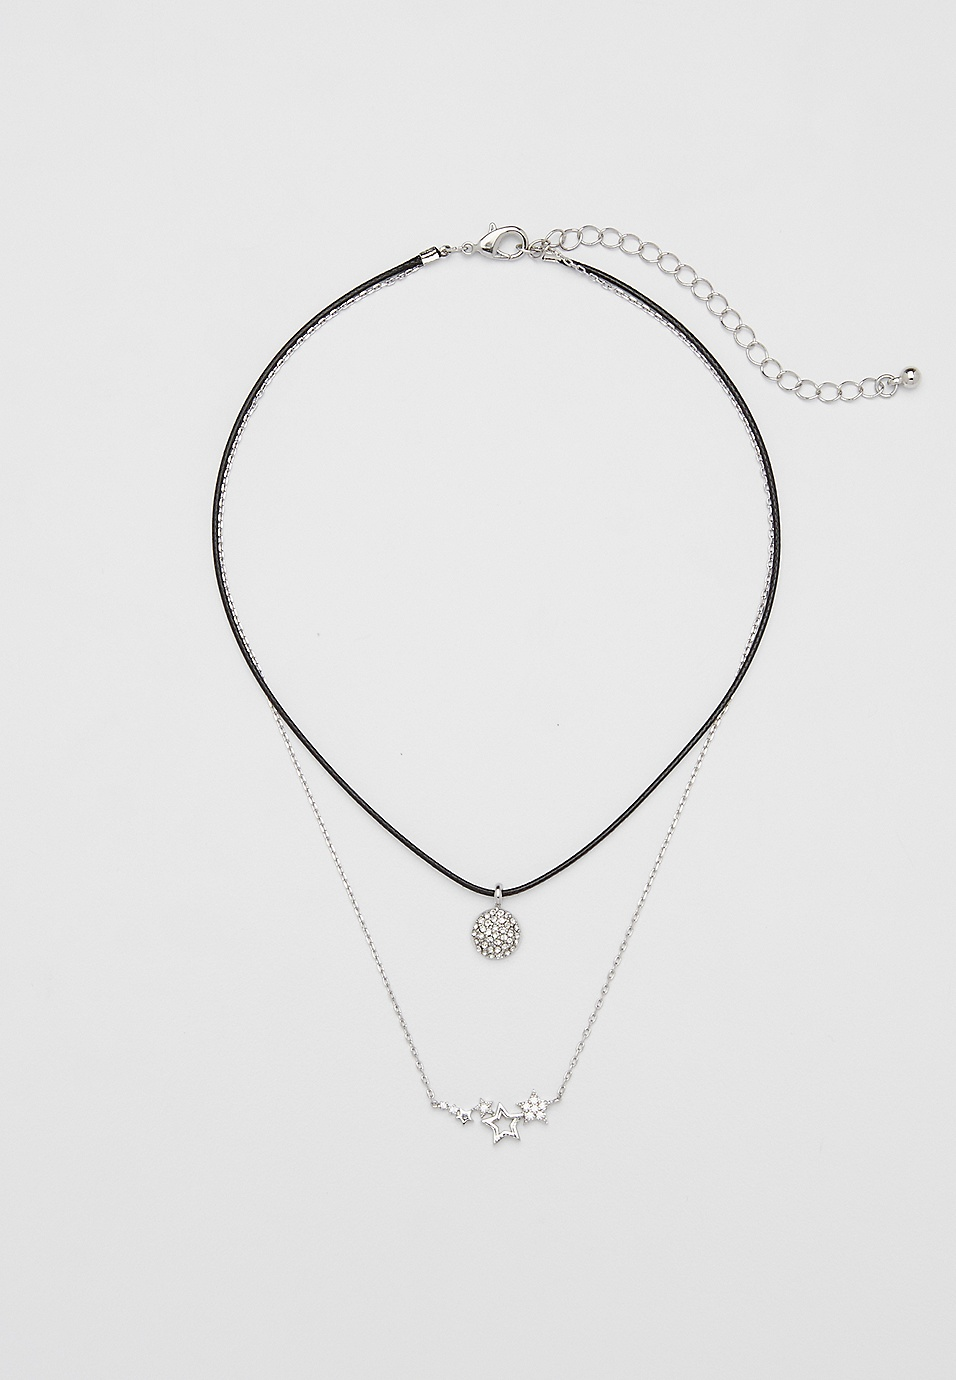 439c3f87a1d61 layered choker necklace with star cluster pendant | maurices